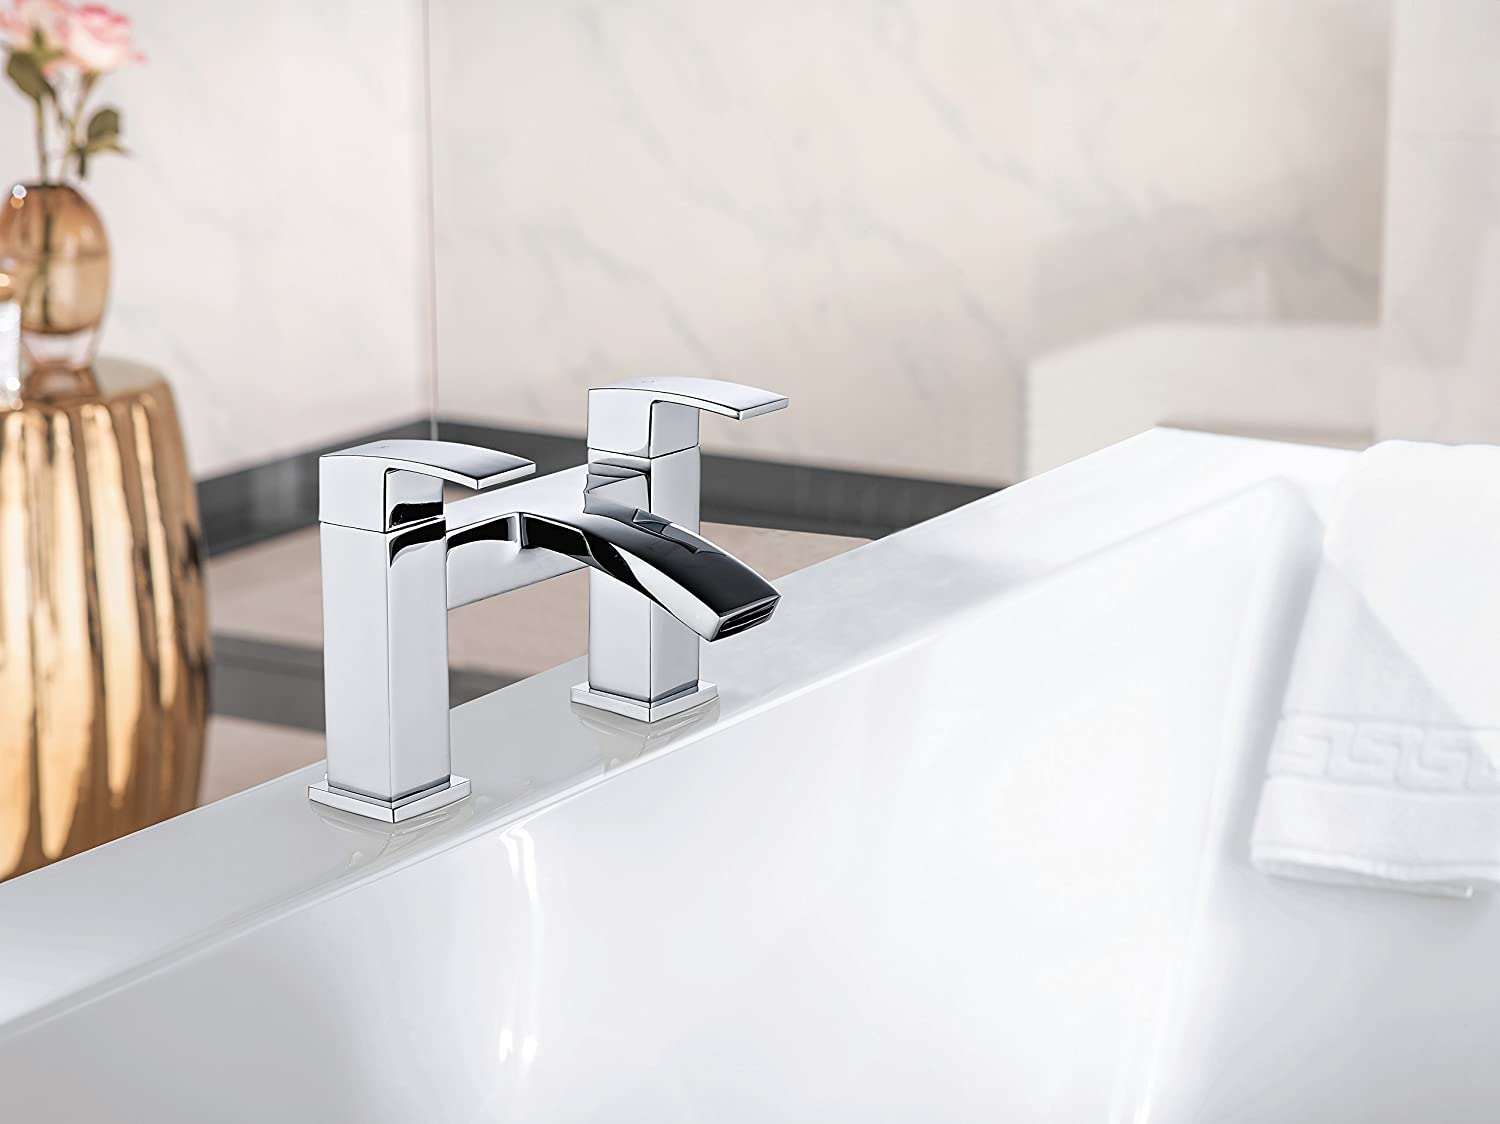 Square Curved Chrome Basin | Bath Filler | Shower Mixer Taps Solid Brass (Basin Mixer & Waste) Tailored-Plumb